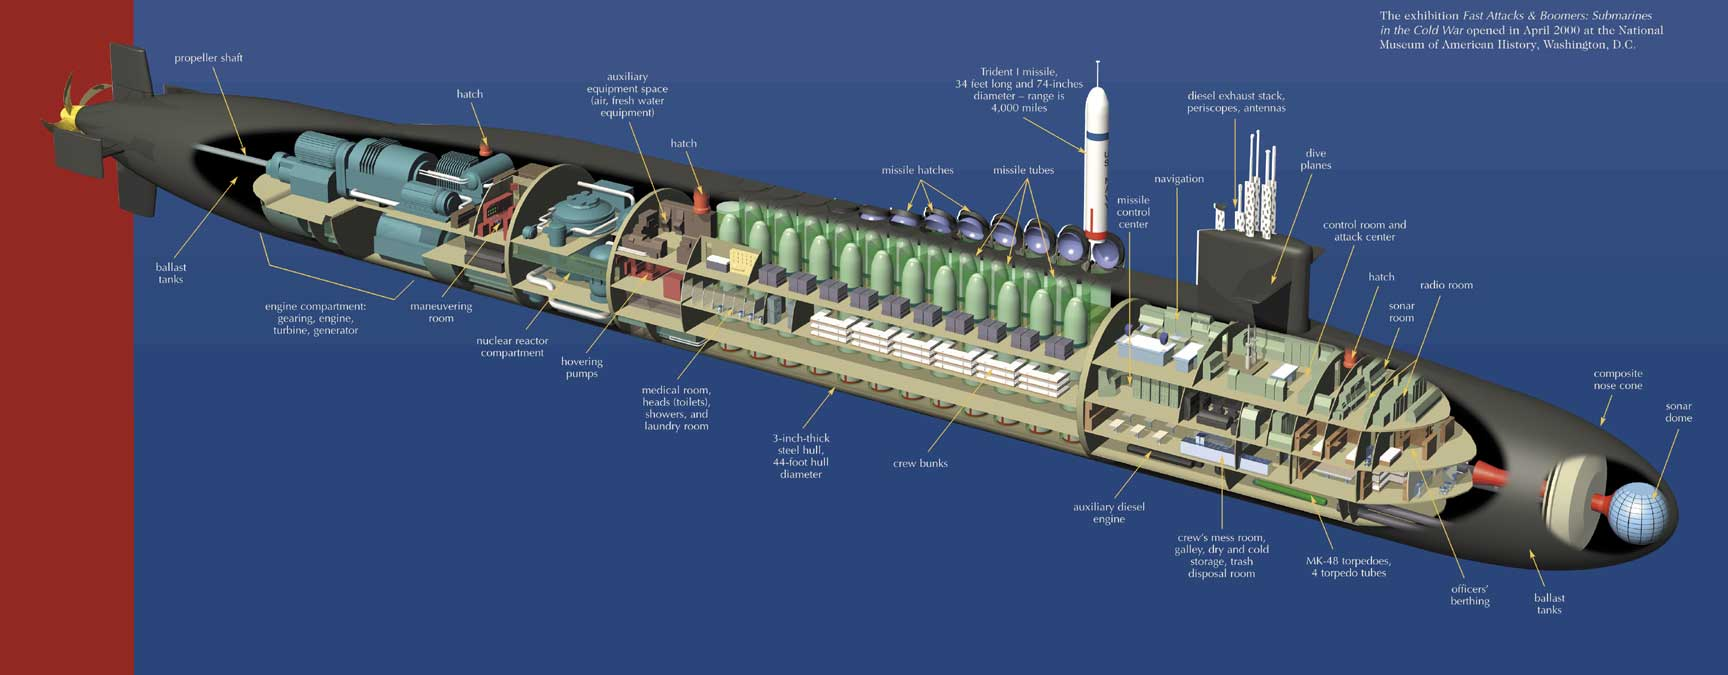 nuclear reactors in india essay